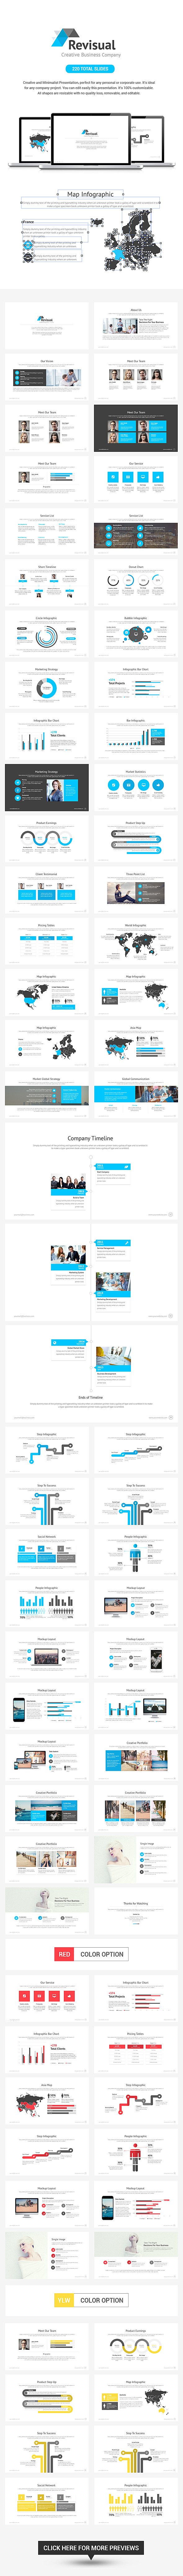 GraphicRiver Revisual Keynote Template 9936842